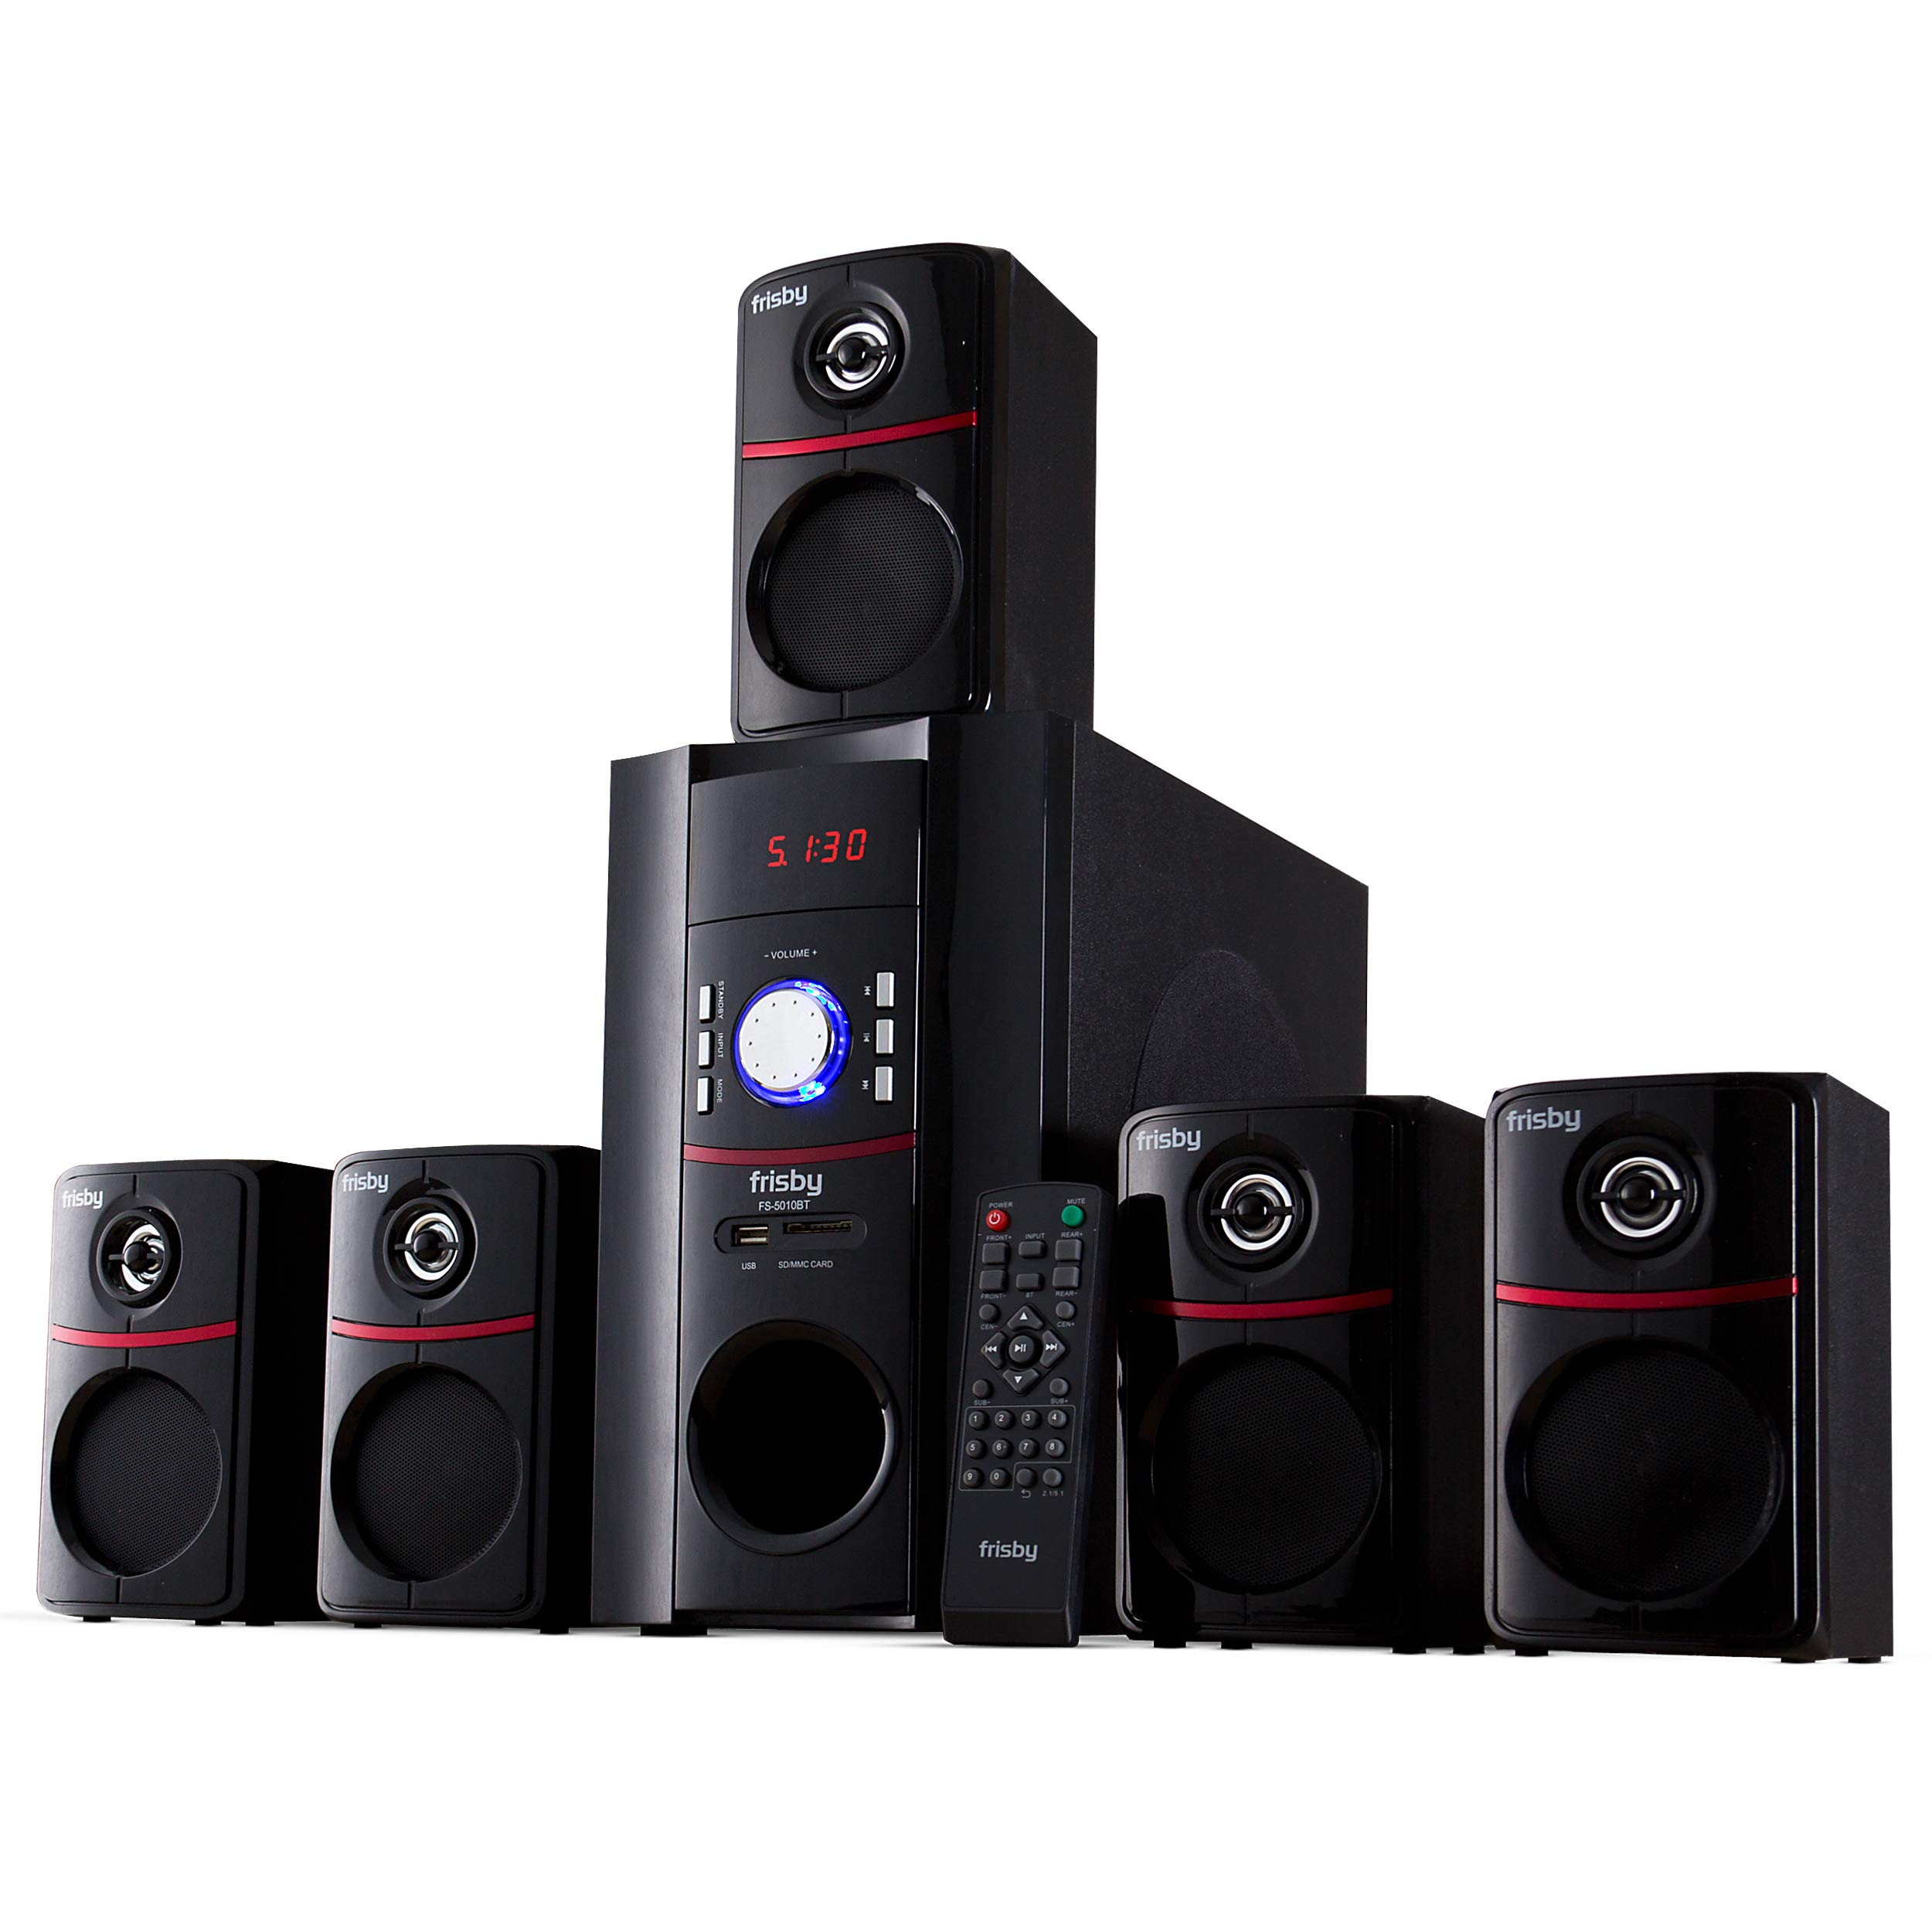 Frisby 5.1 Surround Sound System with Subwoofer and Wired Speakers, Bluetooth Wireless Streaming from Devices & Media Reader, Home Theater Speaker System in a Box - Black